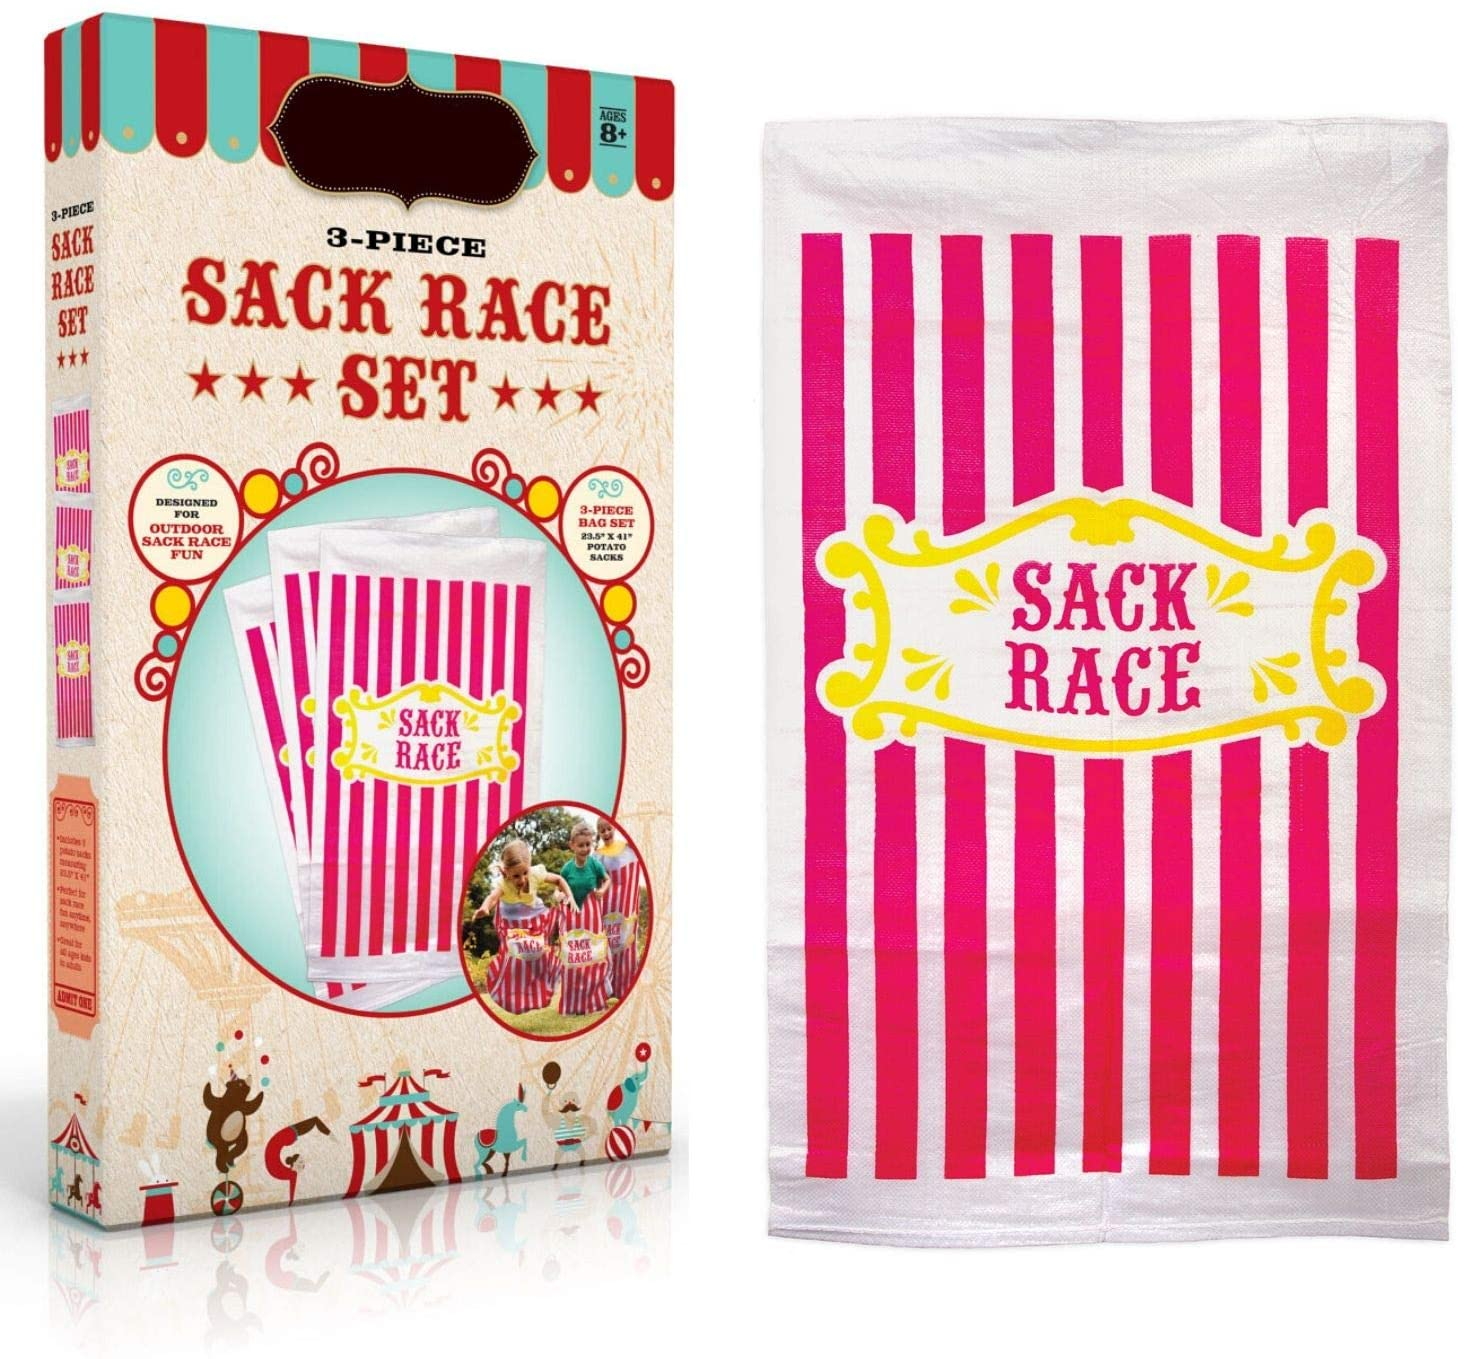 Sack Race Bags For Kids And Adults - 3 Pcs Set. Great For Outdoor Games, Kids Outside Activities. Potato Sack Race Bags For Kids, Fun Carnival Games Easter Games, Family Game Events amd Party Games